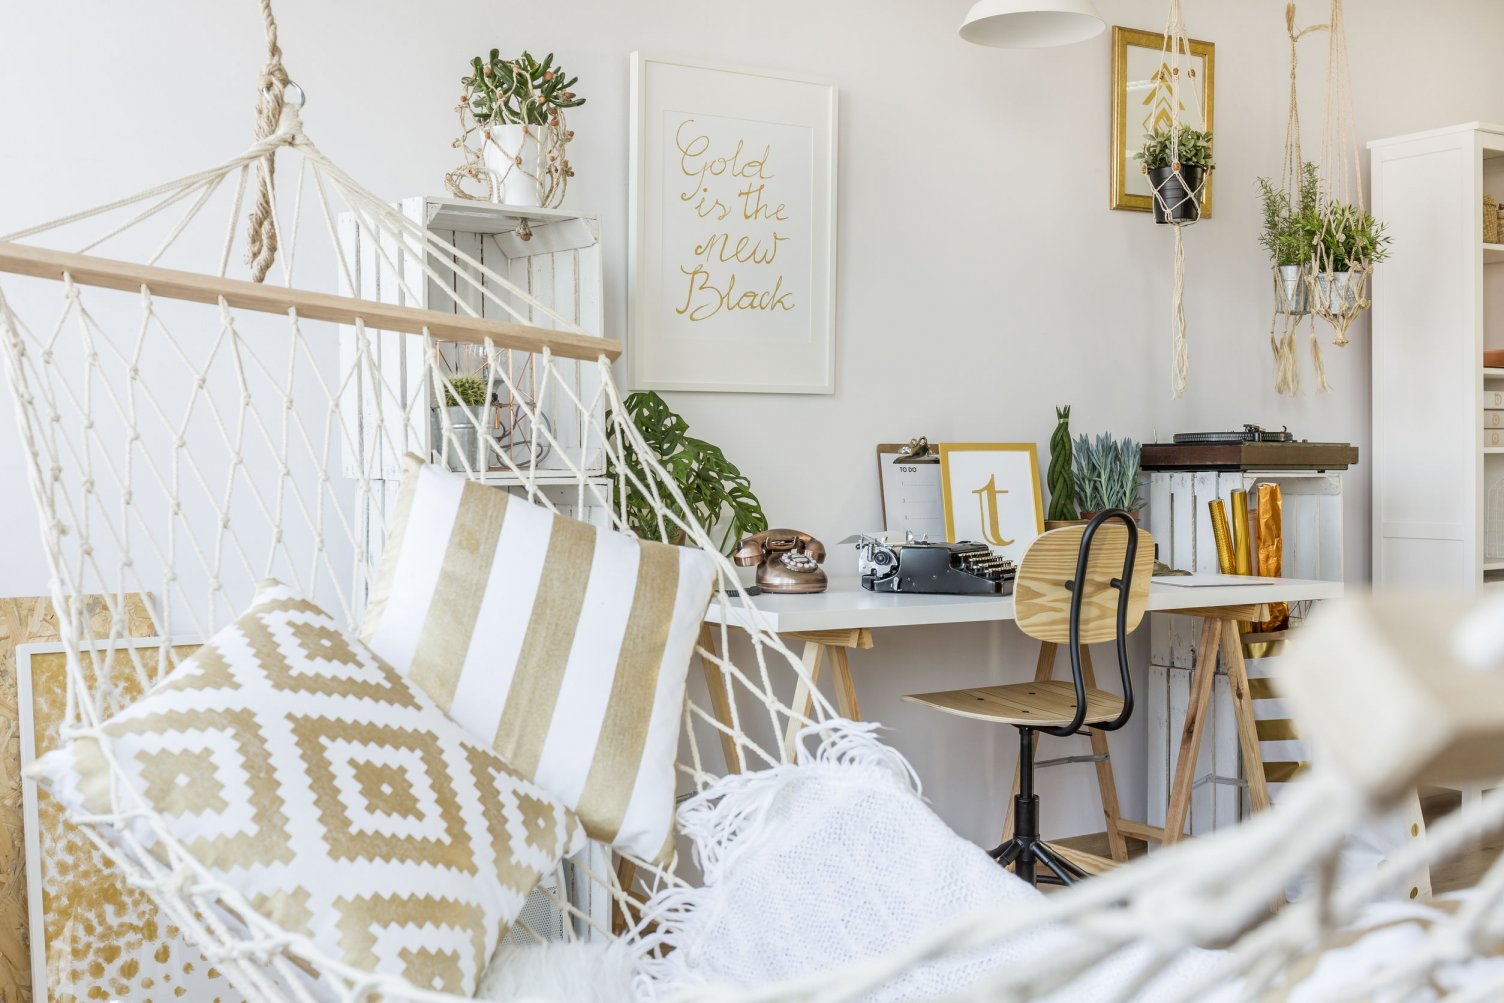 With our everyday decor tips and tricks you can begin to transform your home into the timeless paradise you always wanted. & Everday Decor Tips and Tricks | From the Floors Up